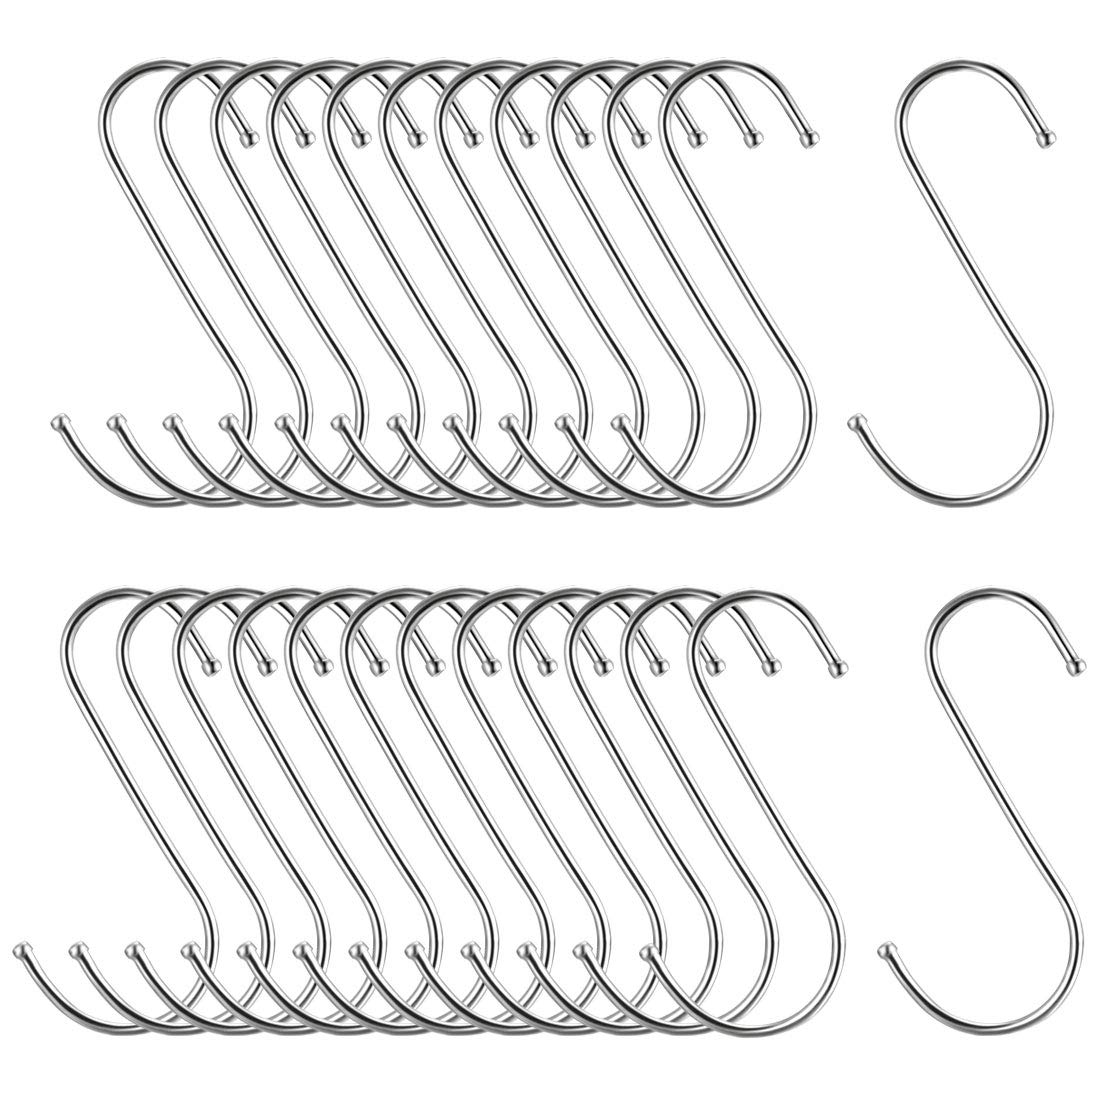 uxcell Metal S Hooks 4.72 inches S Shaped Hook Hangers for Kitchen Bathroom Bedroom Storage Room Office Outdoor Multiple Uses 25pcs